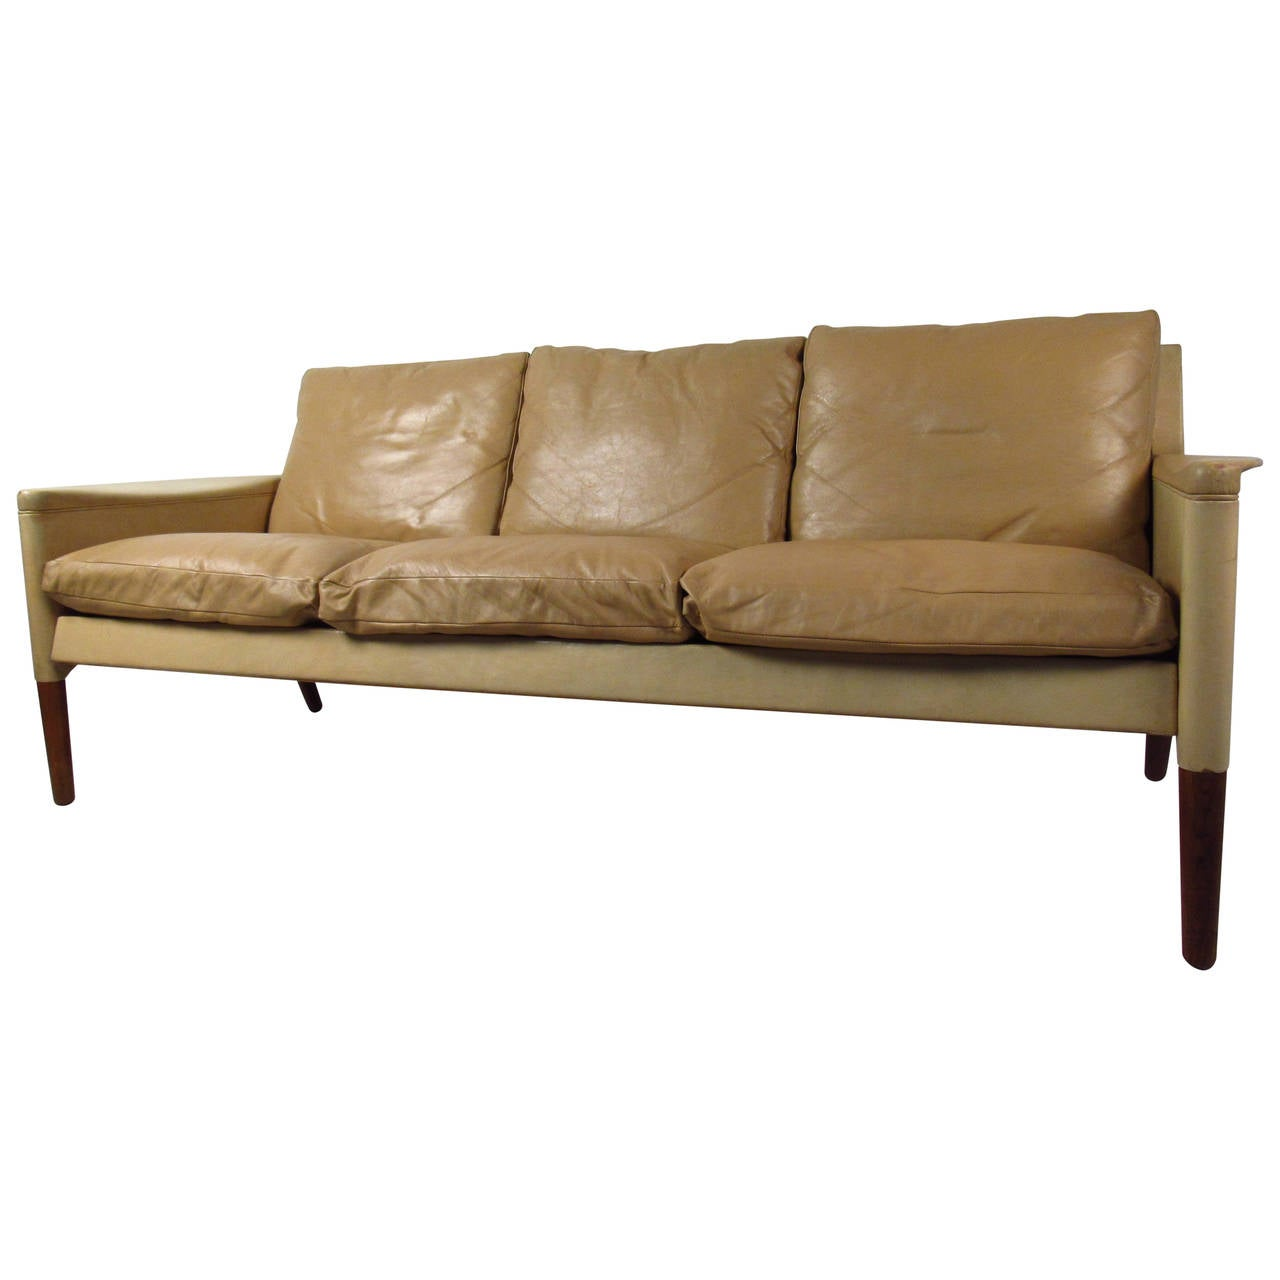 Vintage Danish Leather Sofa For Sale At 1stdibs